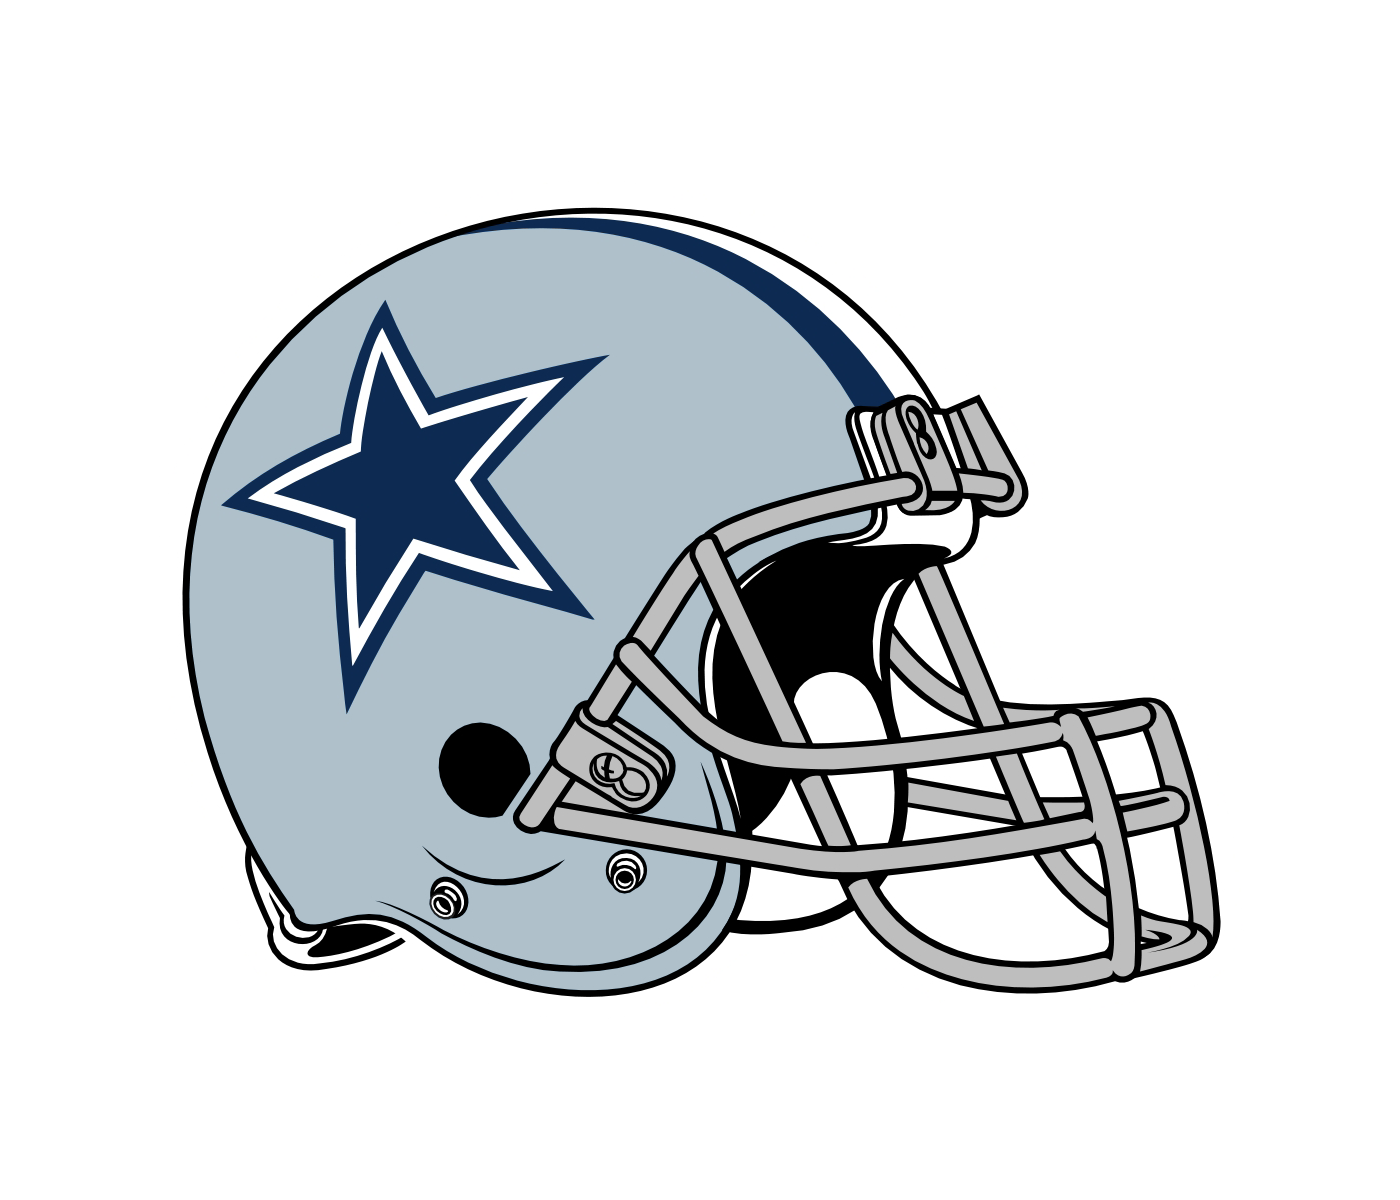 Football xo clipart image transparent stock Dallas Cowboys Helmet Clipart at GetDrawings.com | Free for personal ... image transparent stock